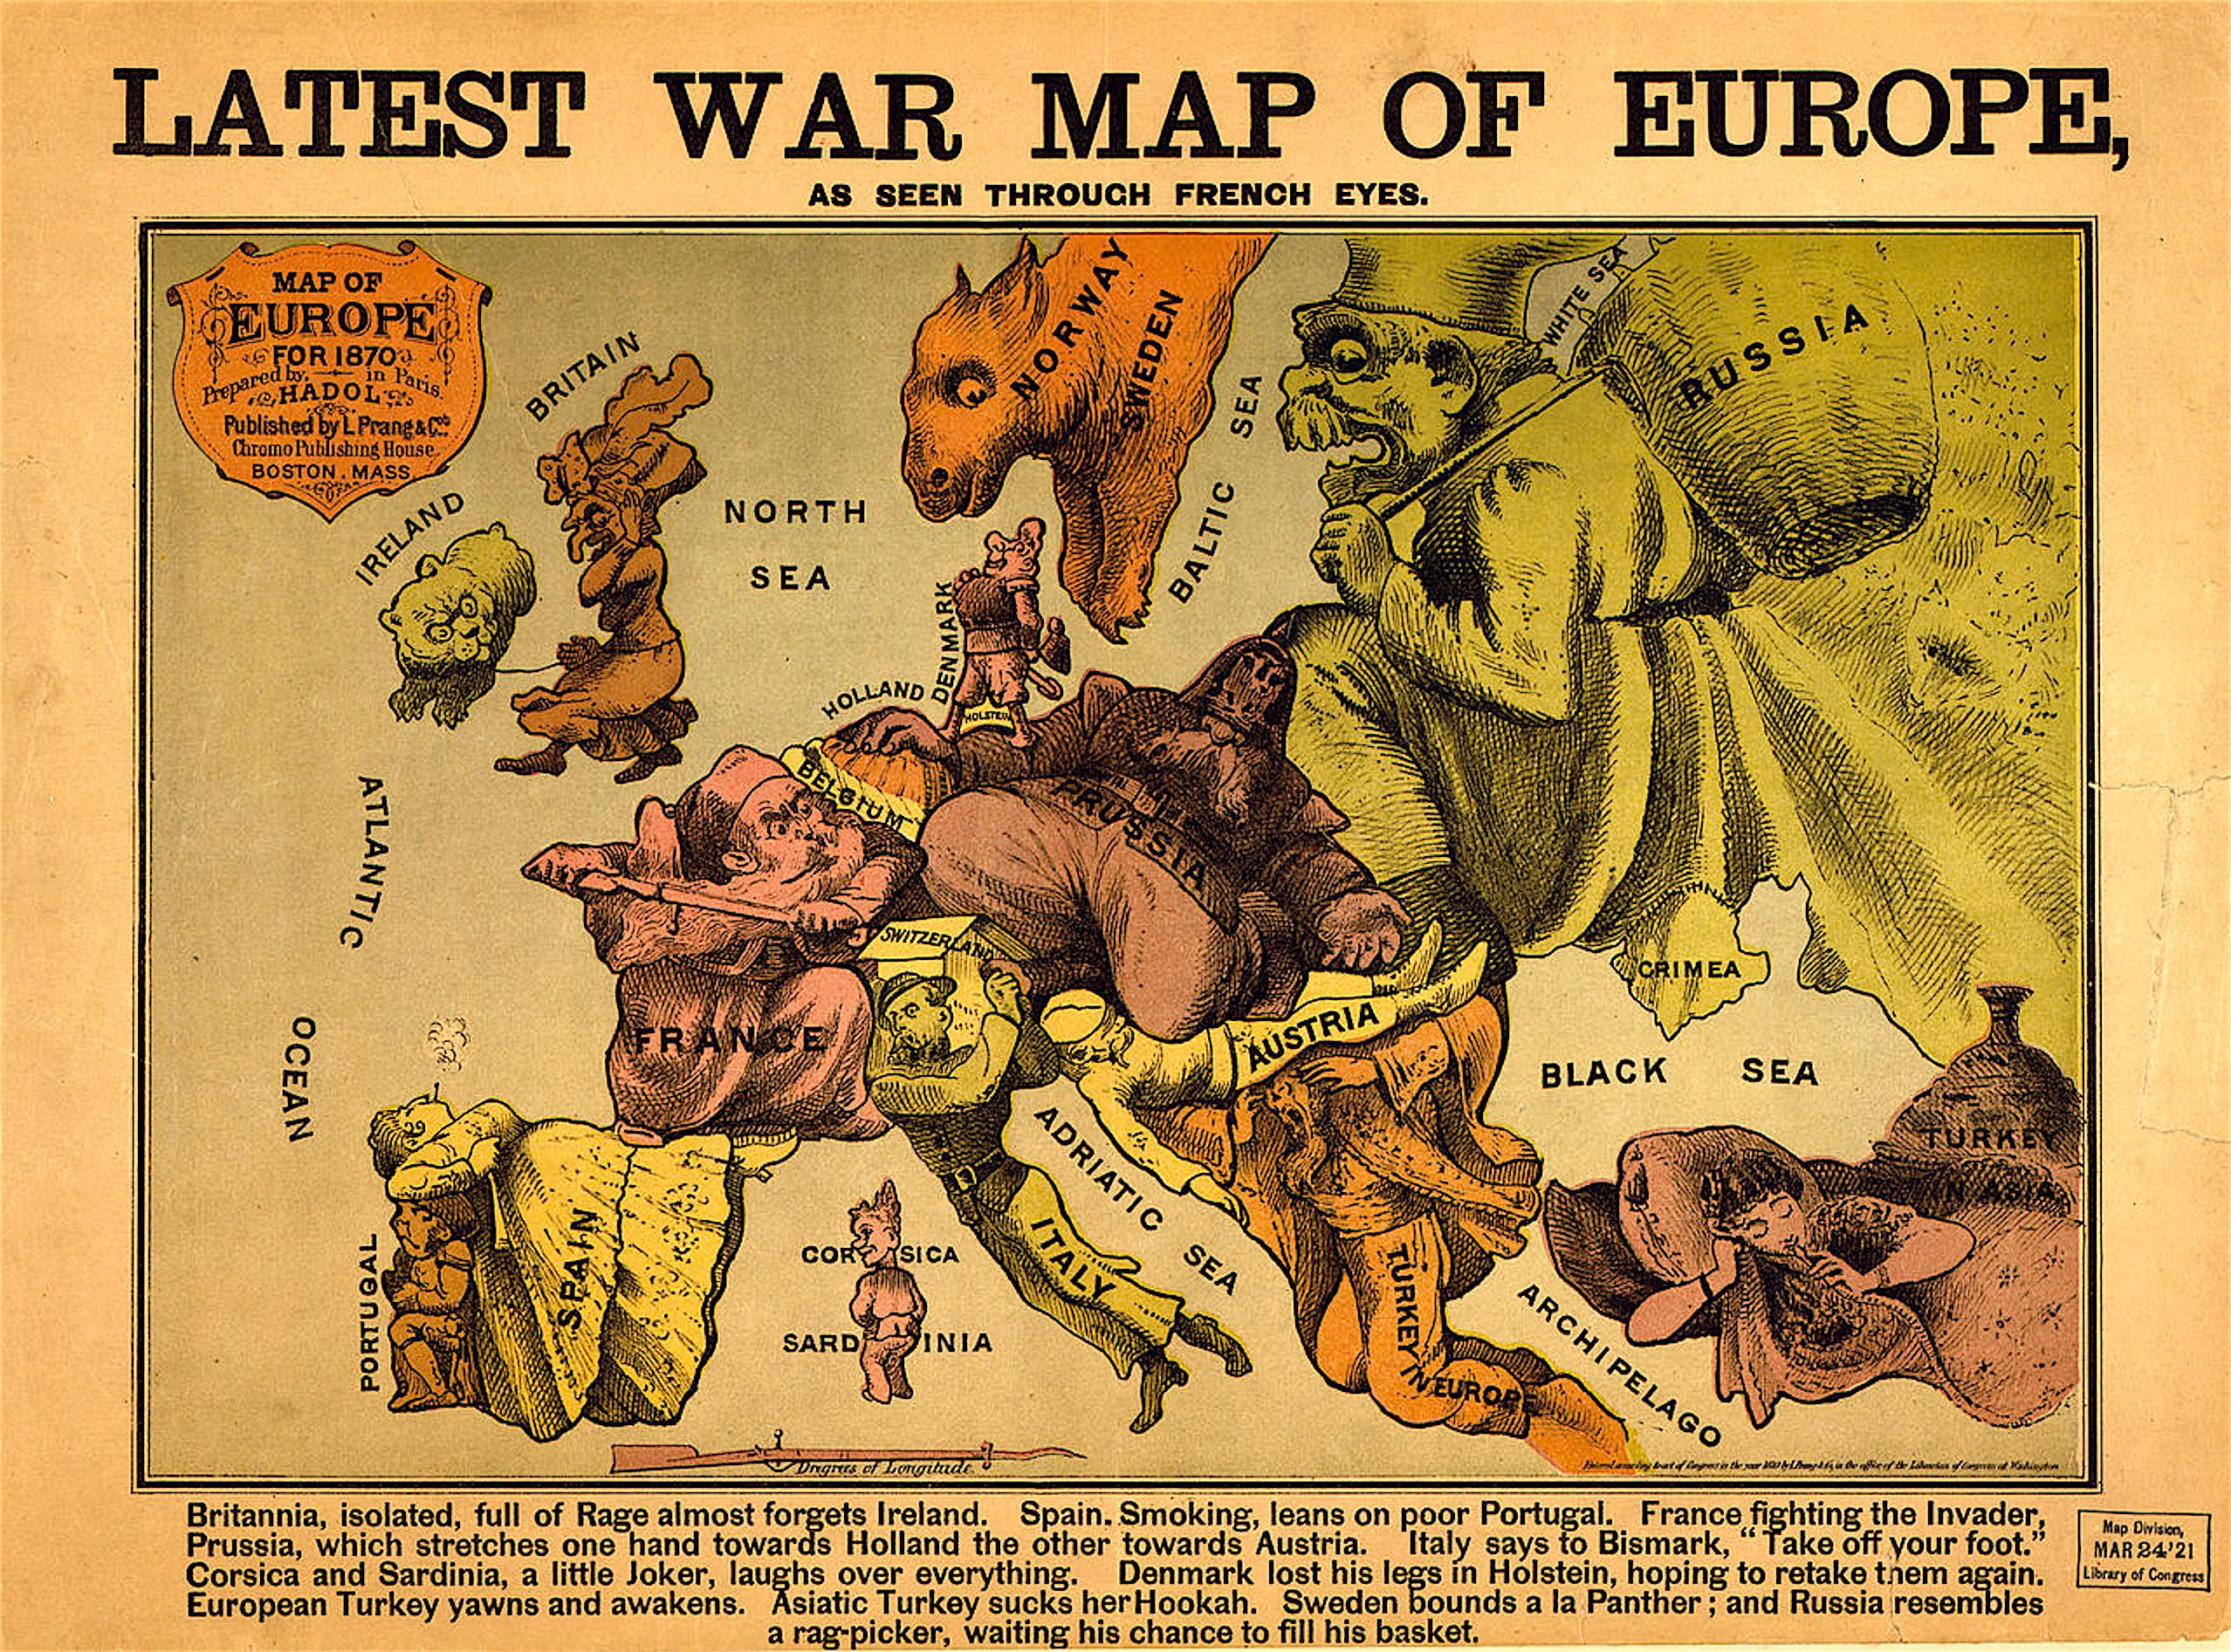 Latest War Map of Europe as seen through French eyes (1870, foto Wikipedia)